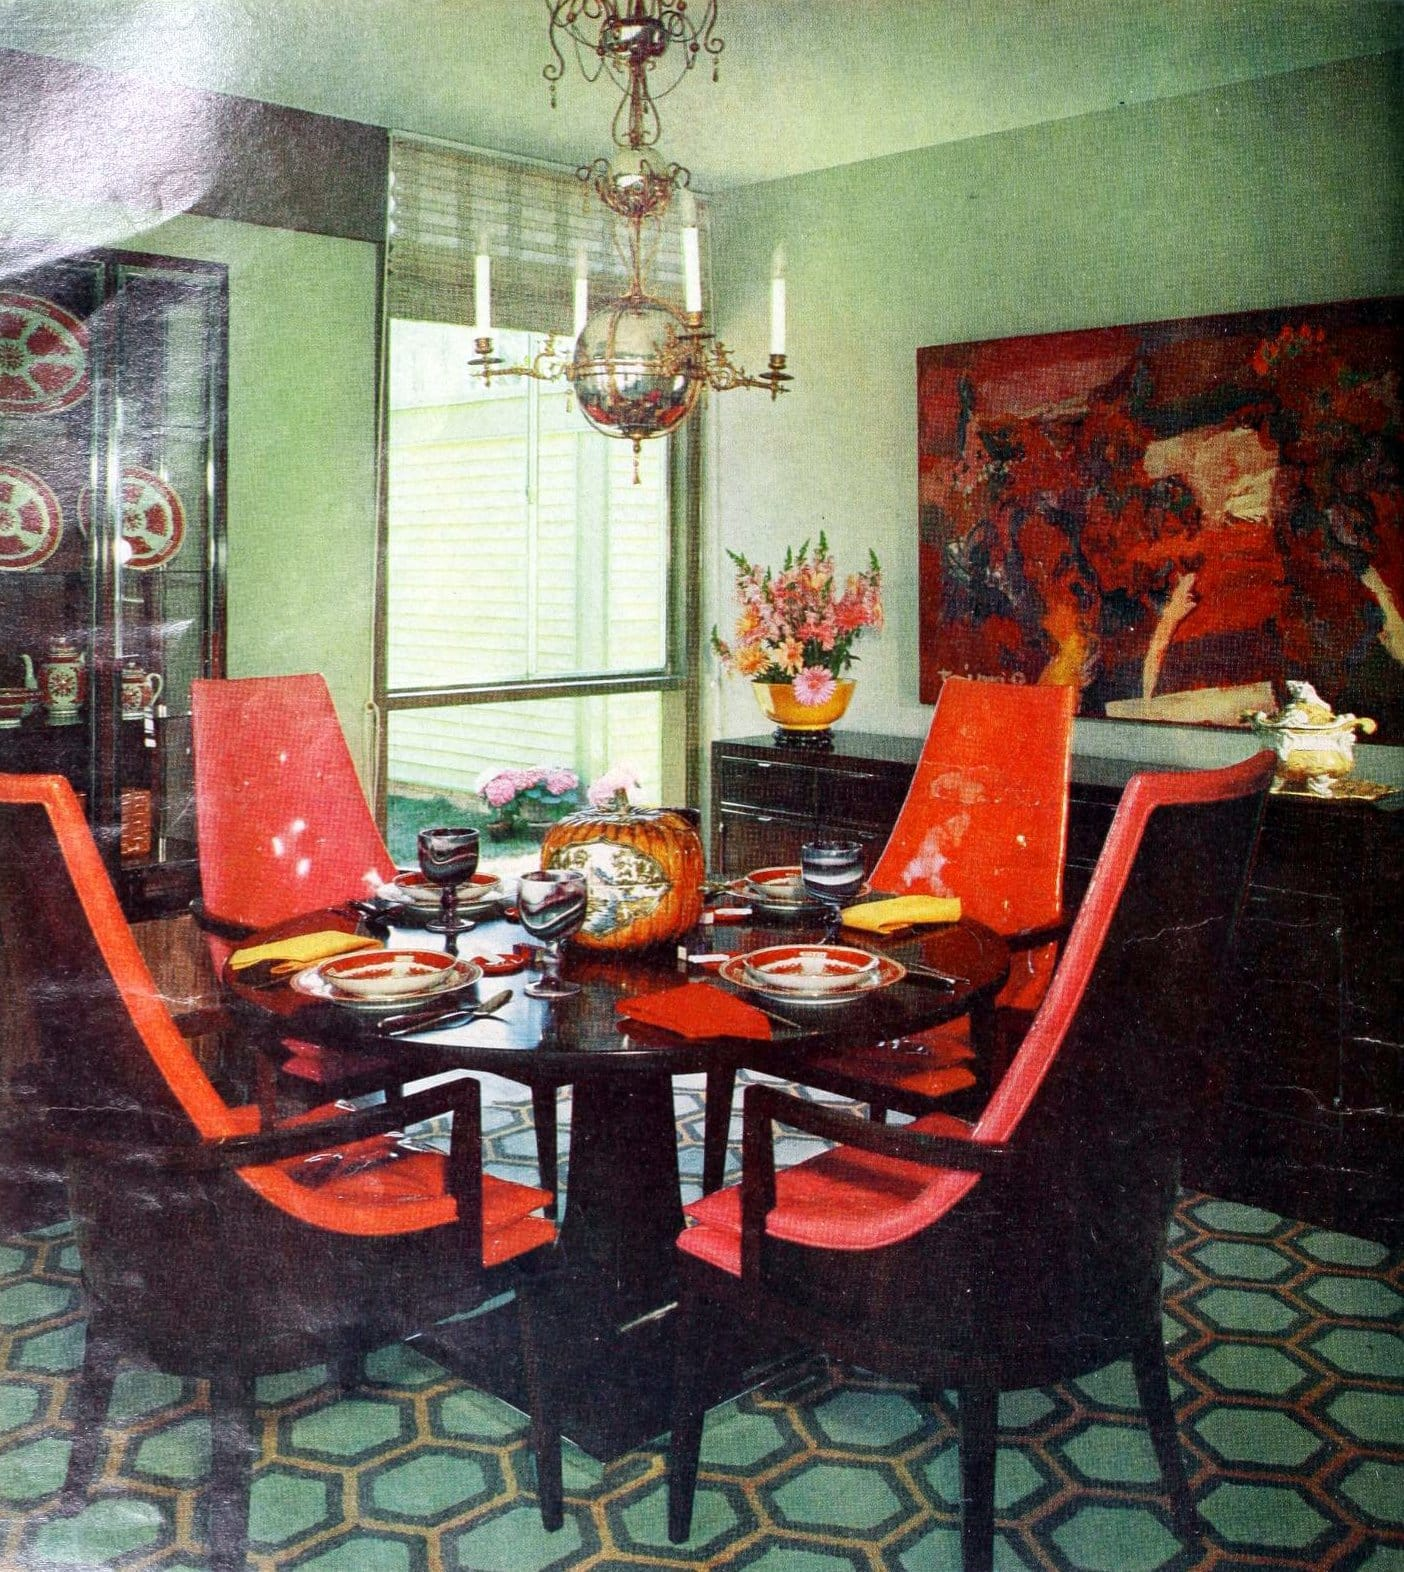 Shiny red vintage patent leather chairs around a circular dining table (1965)